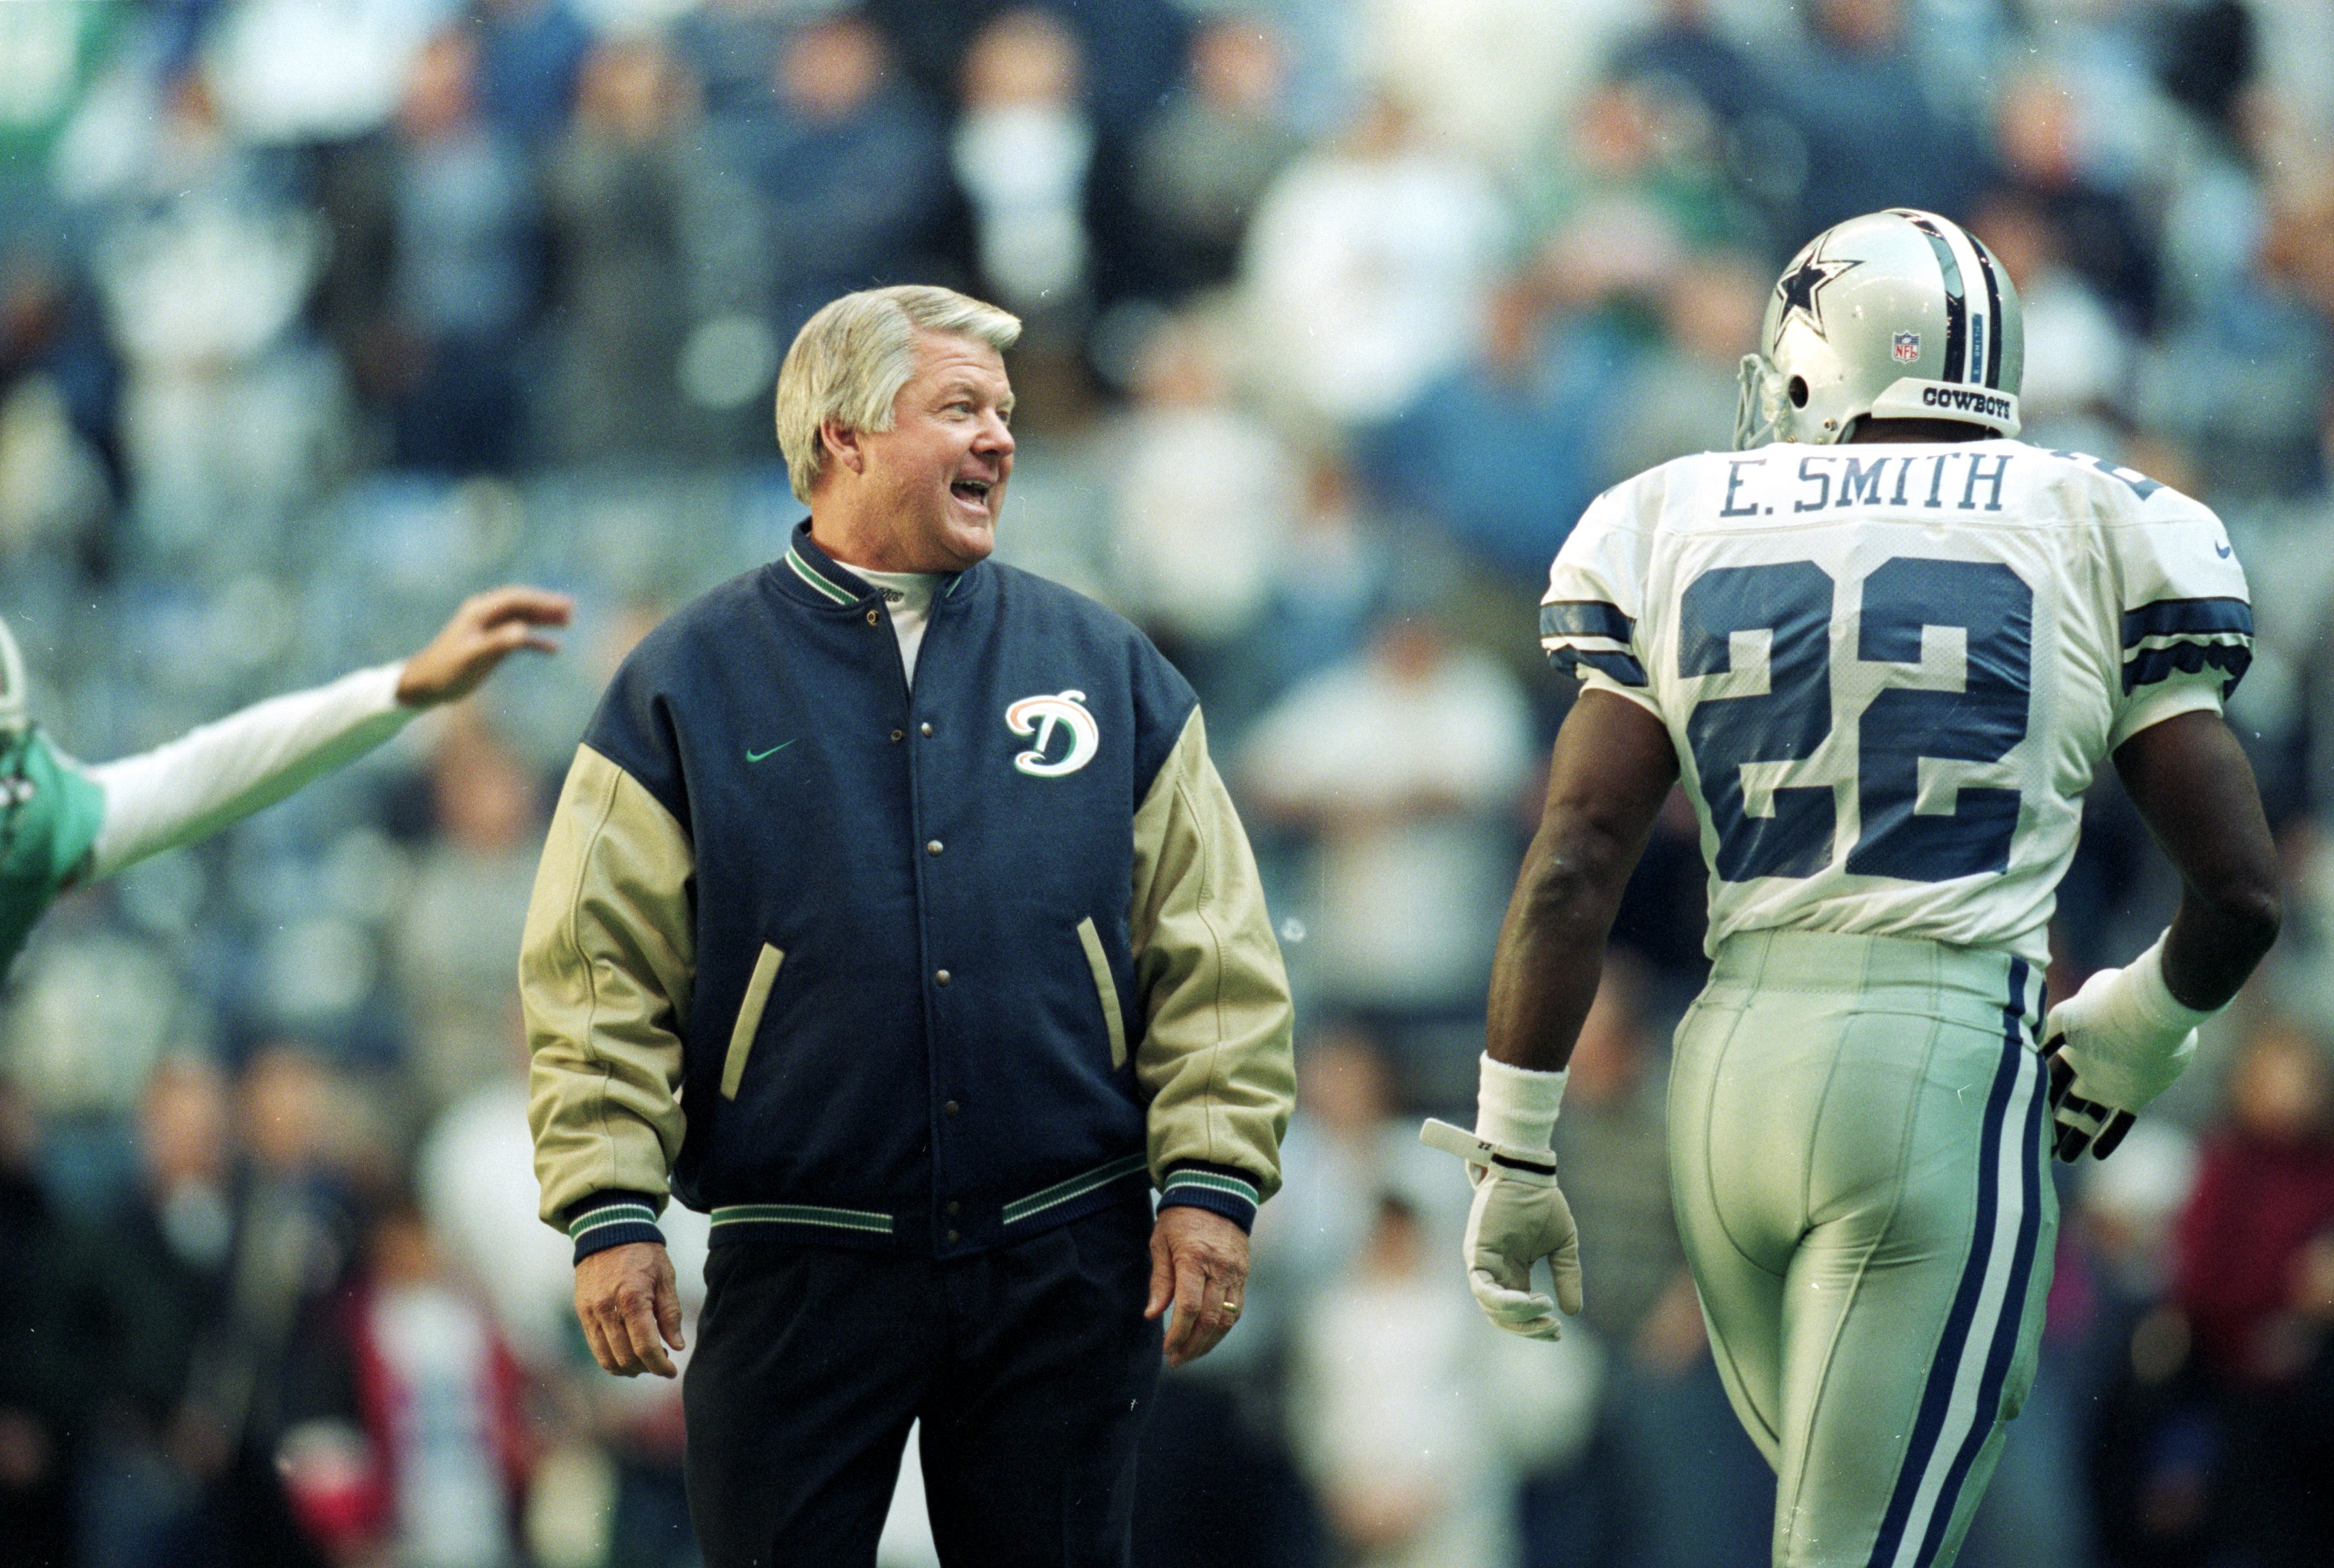 25 Nov 1999: Coach Jimmy Johnson of the Miami Dolphins talks to Emmitt Smith #22 of the Dallas Cowboys as he walks onto the field during the game at the Texas Stadium in Irving, Texas. The Cowboys defeated the Dolphins 20-0.